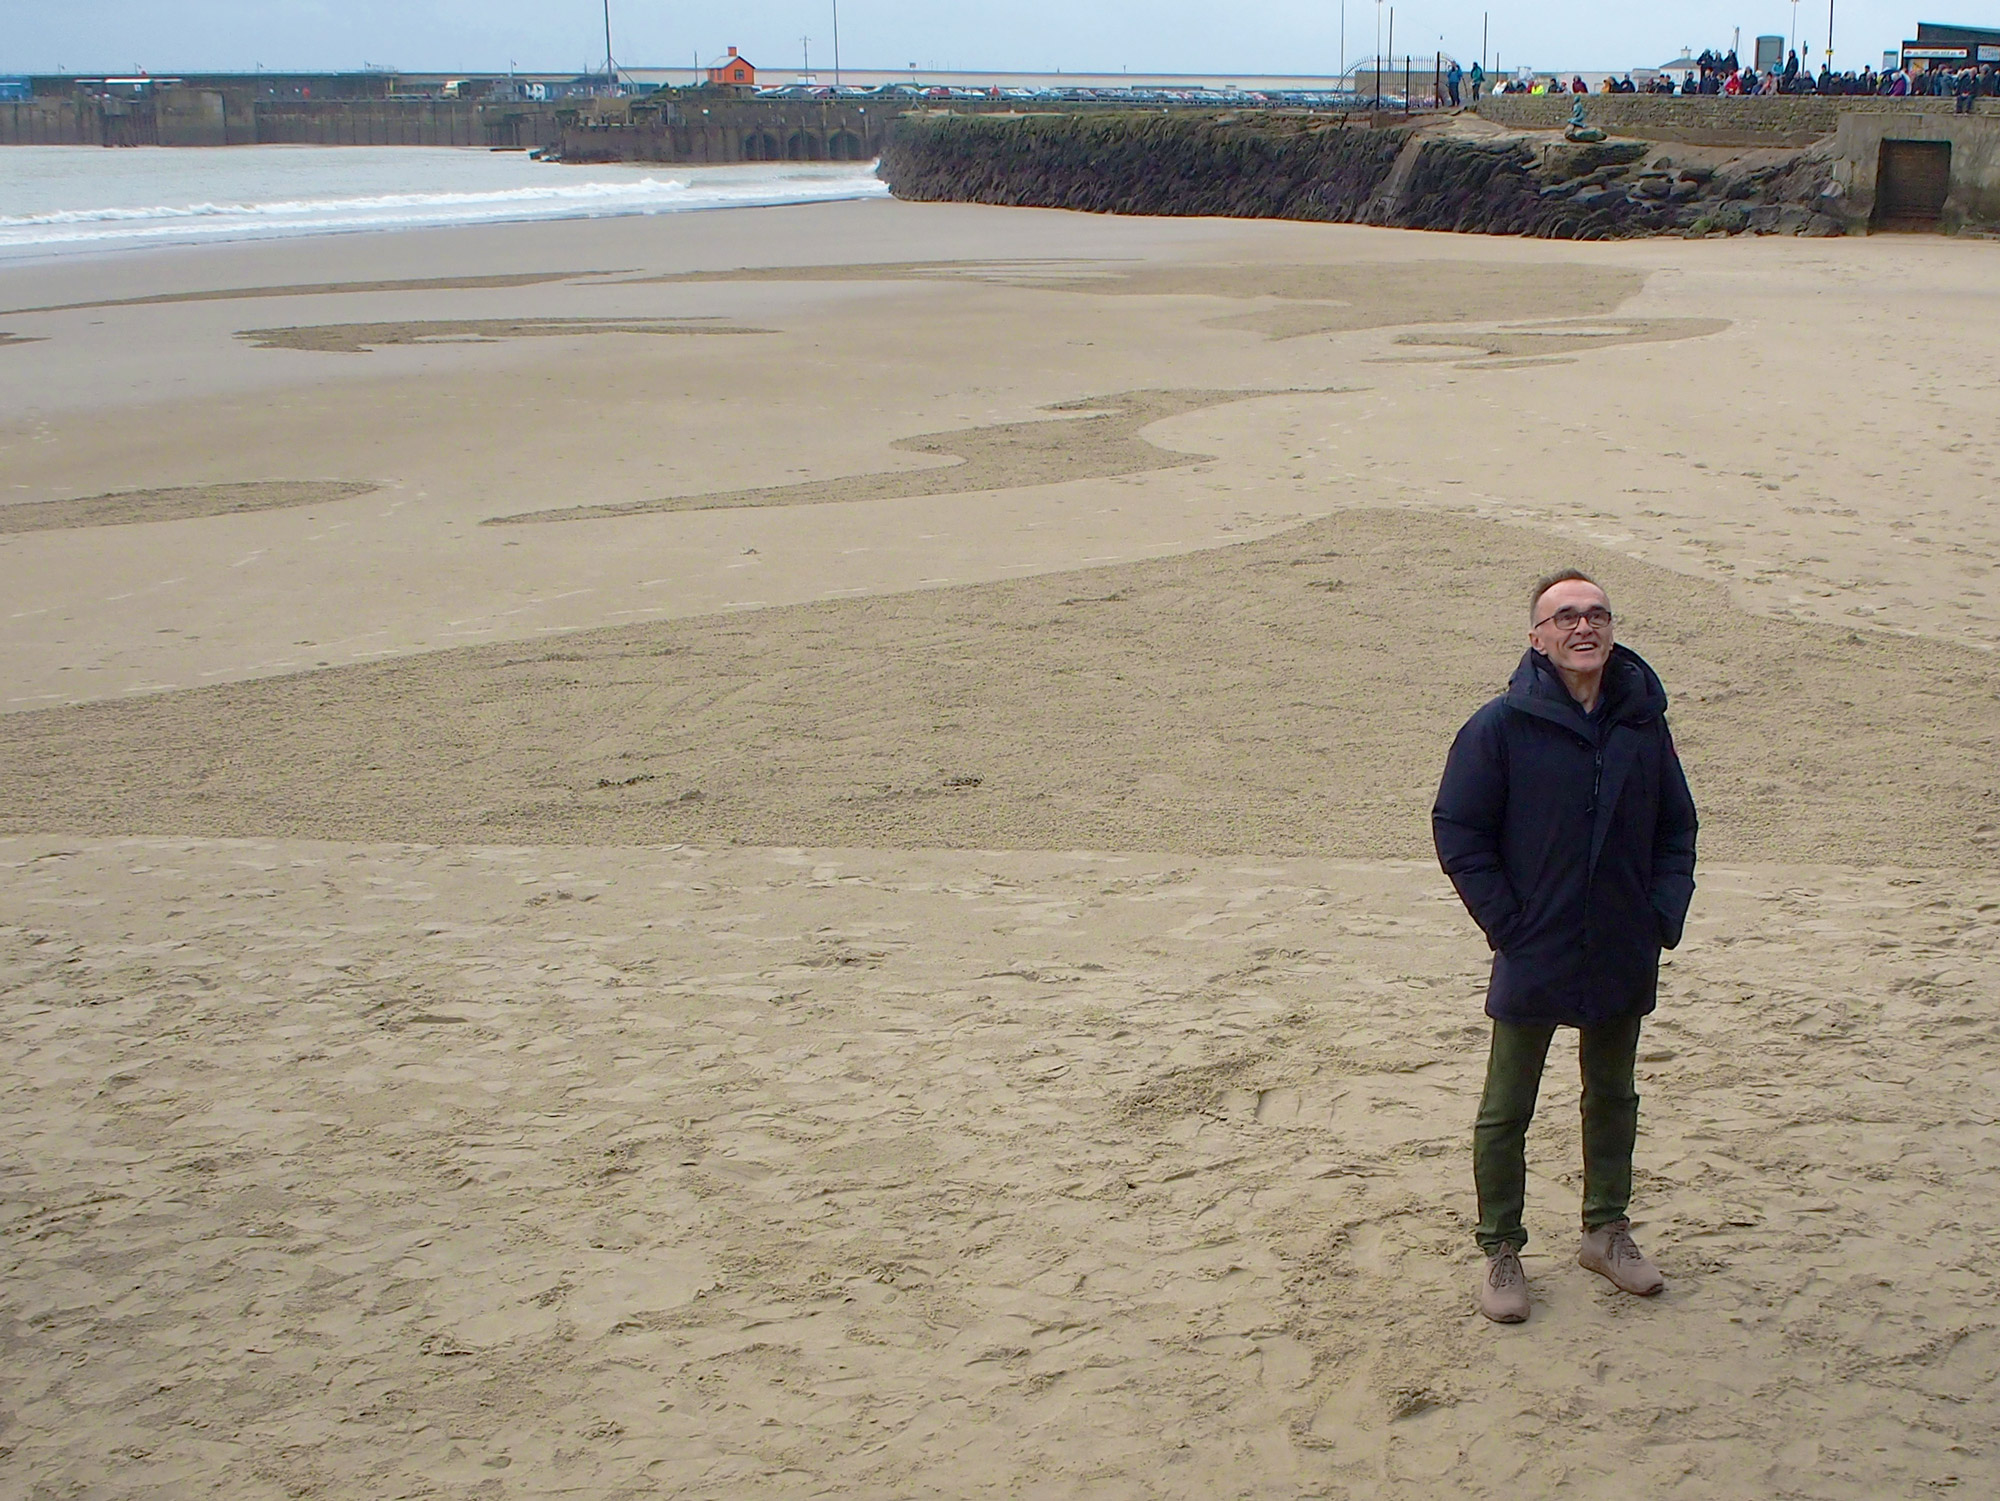 A man stands on an empty, sandy beach. The sand has been raked into a large portrait of a man's face.